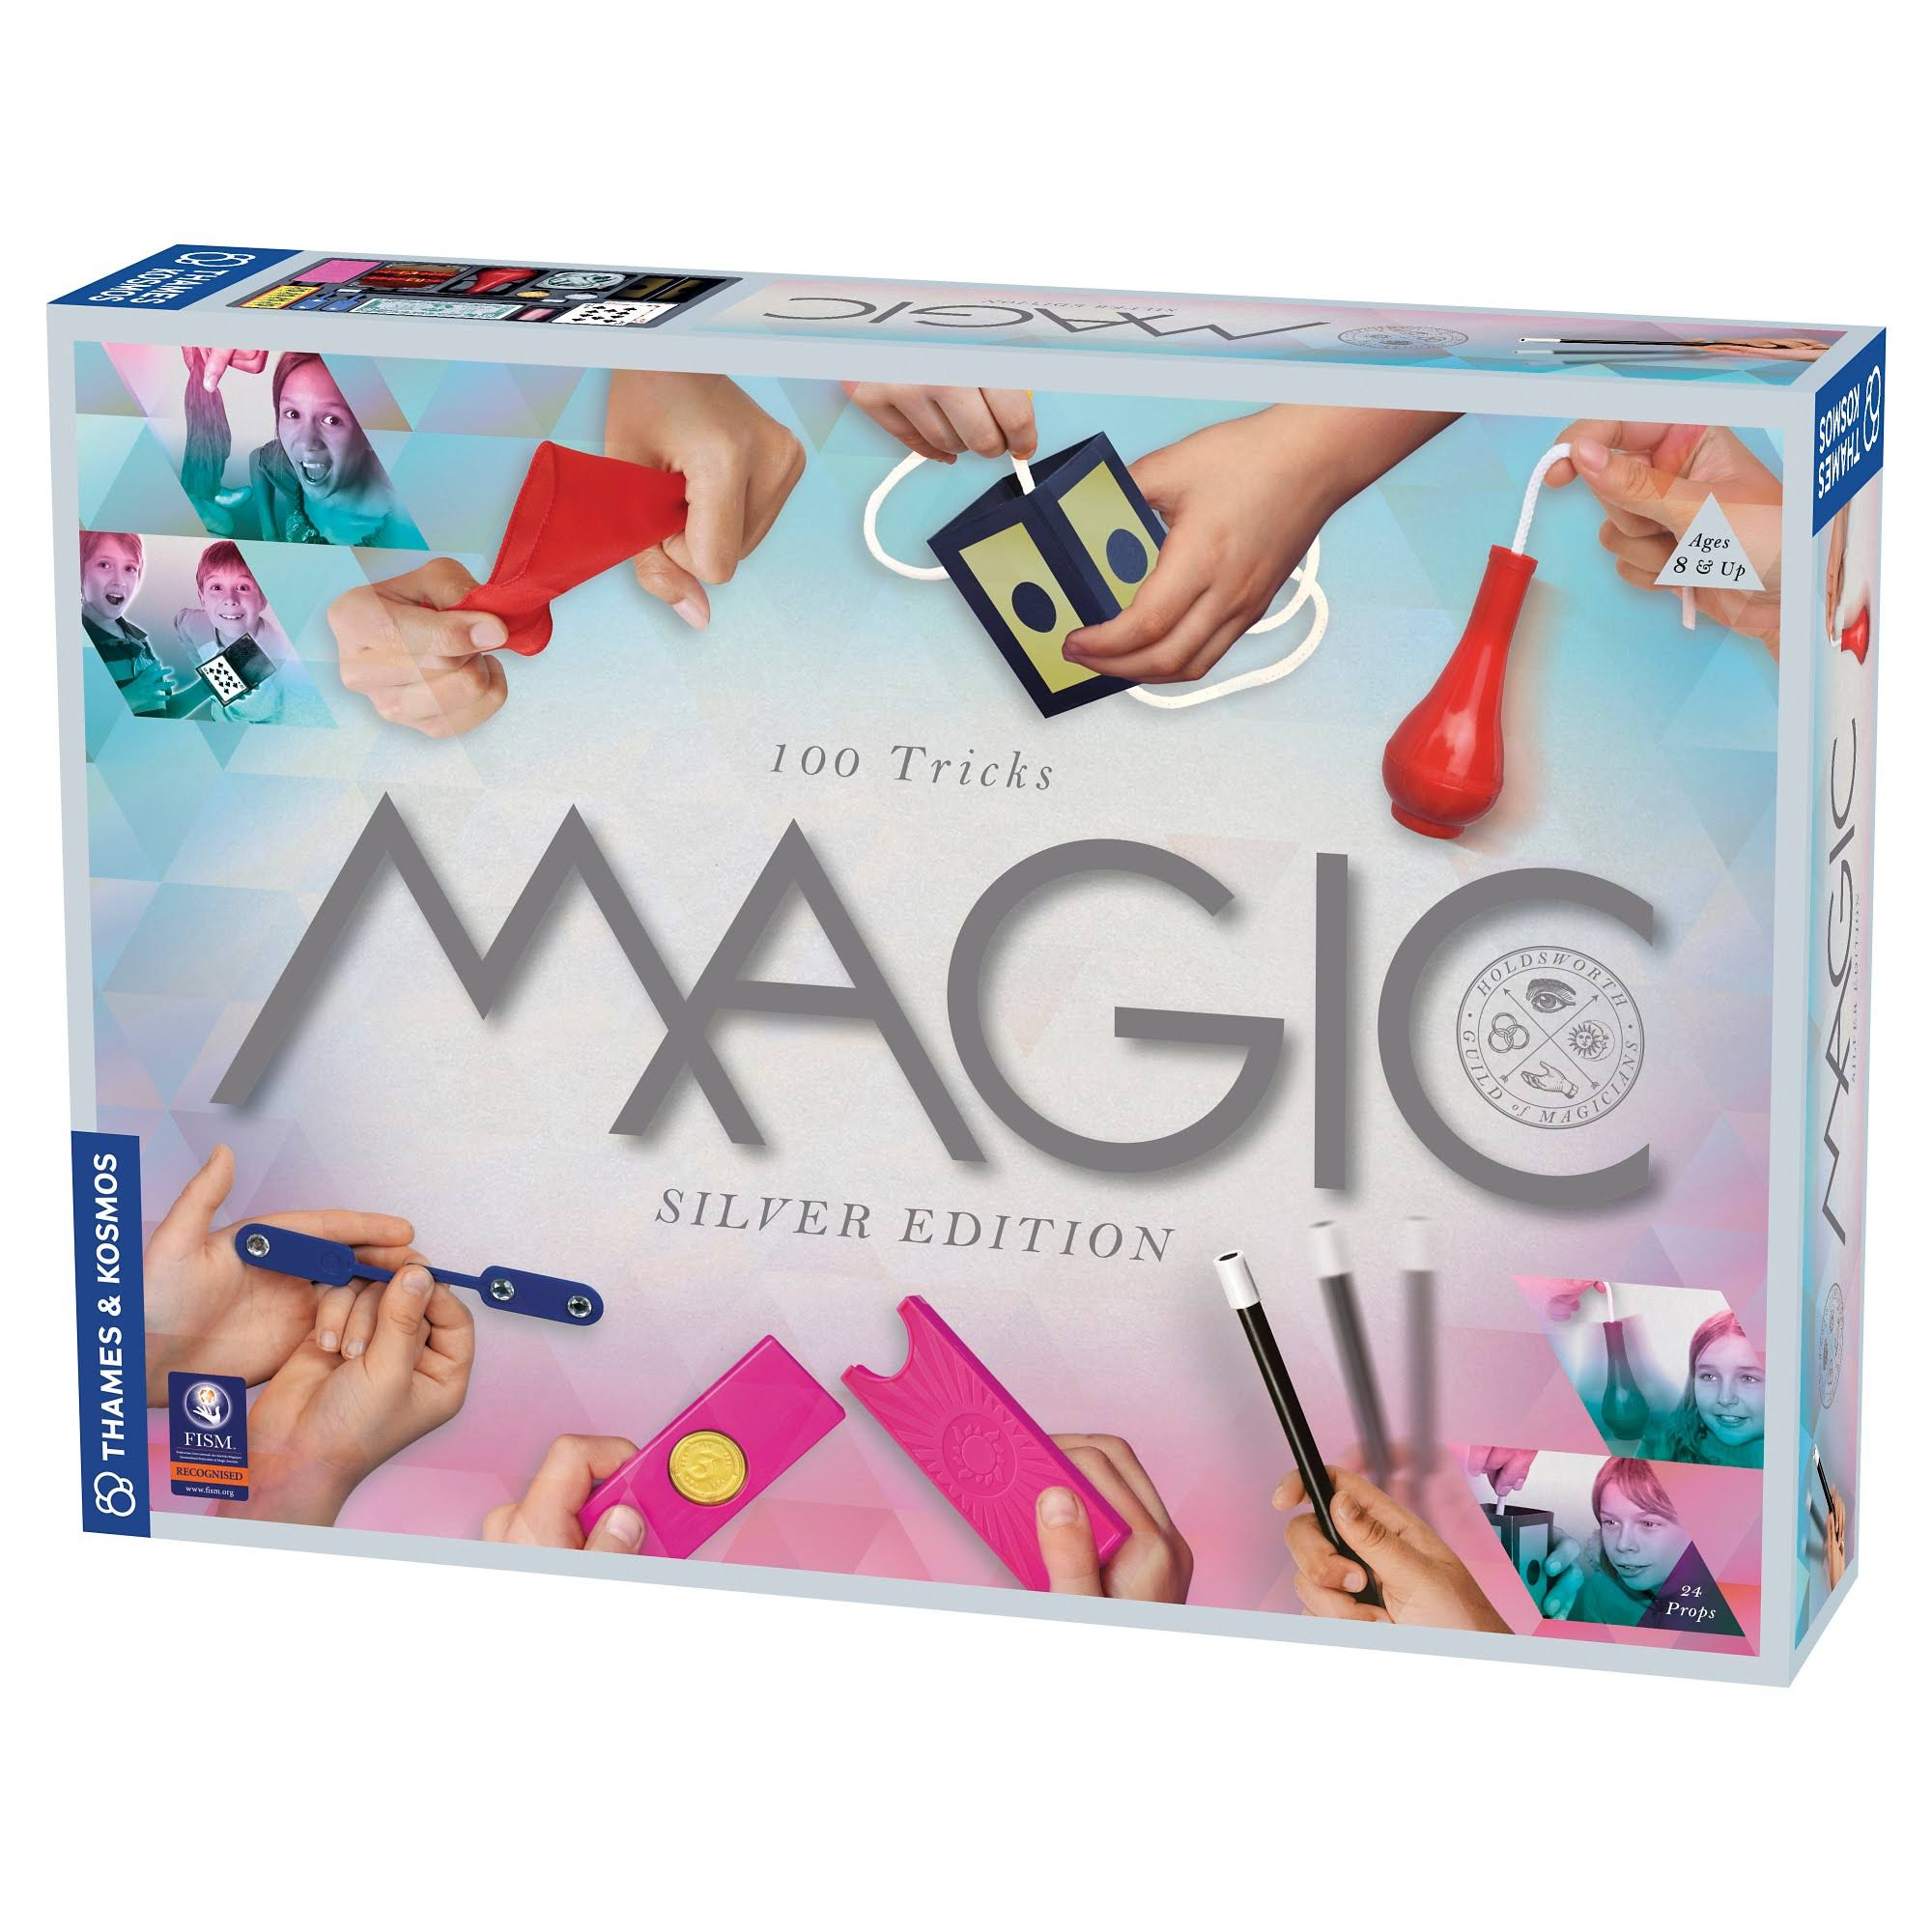 Thames & Kosmos Magic Silver Edition Playset